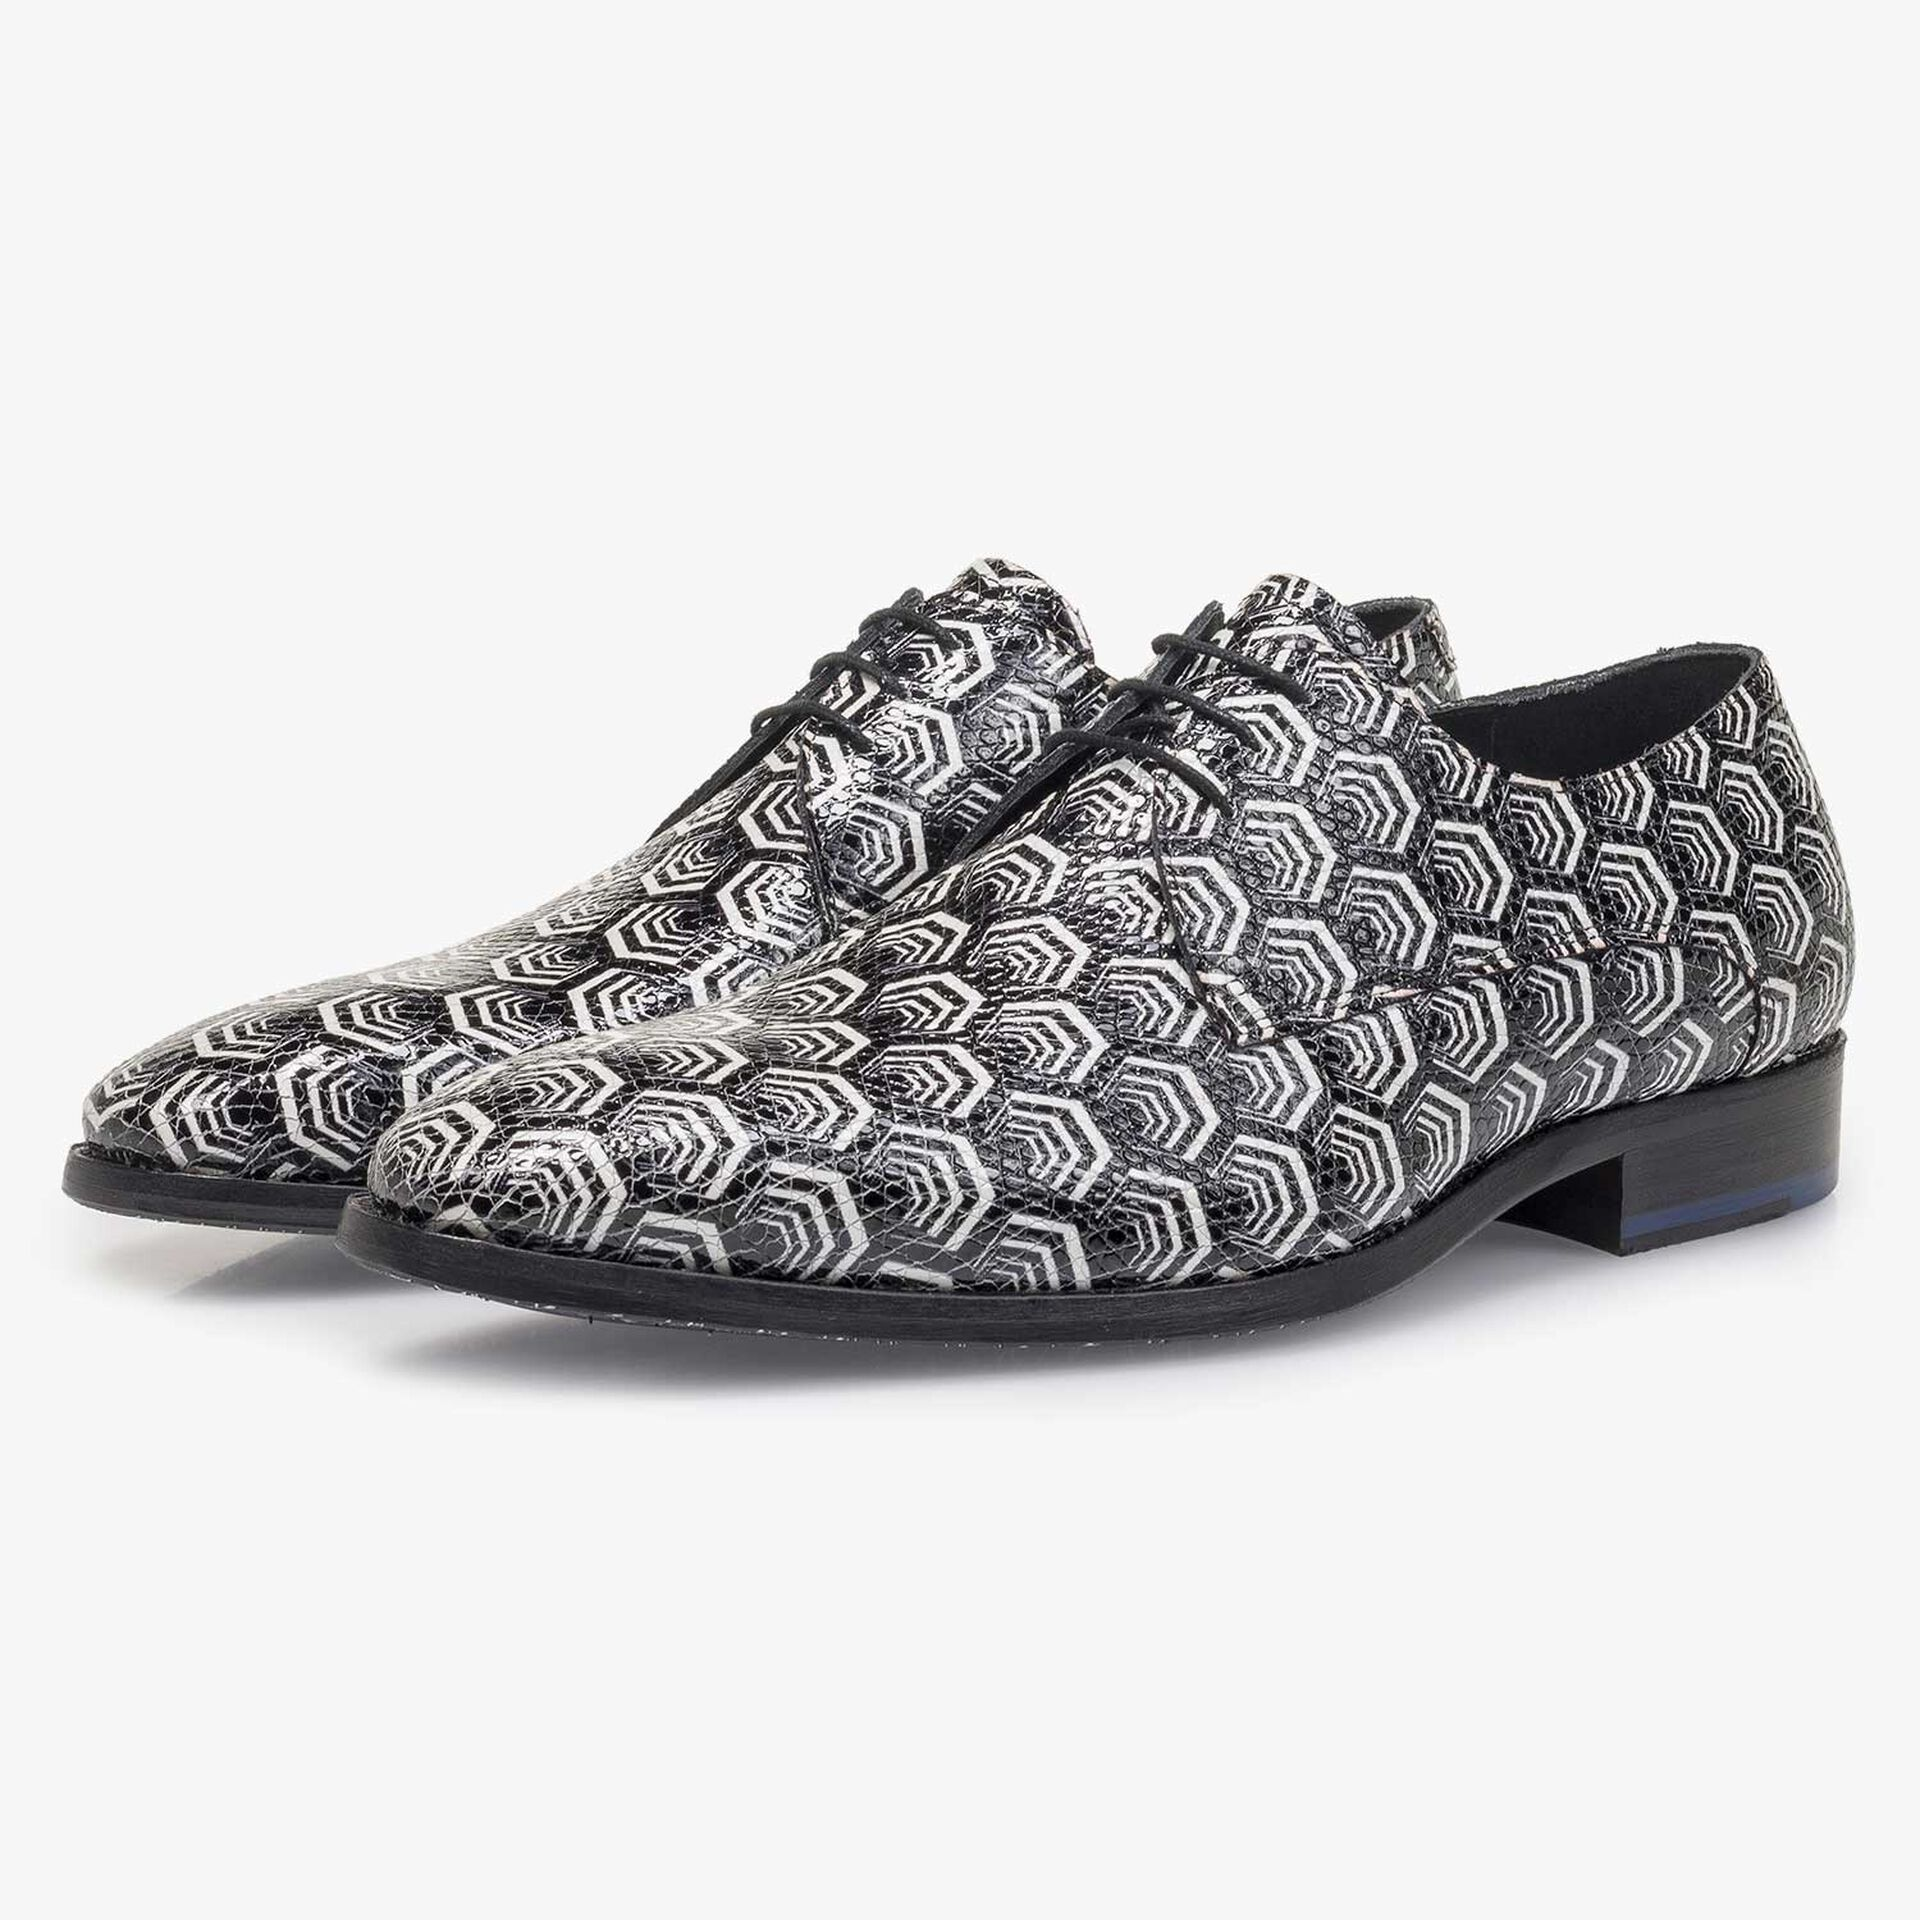 White calf leather lace shoe with black print